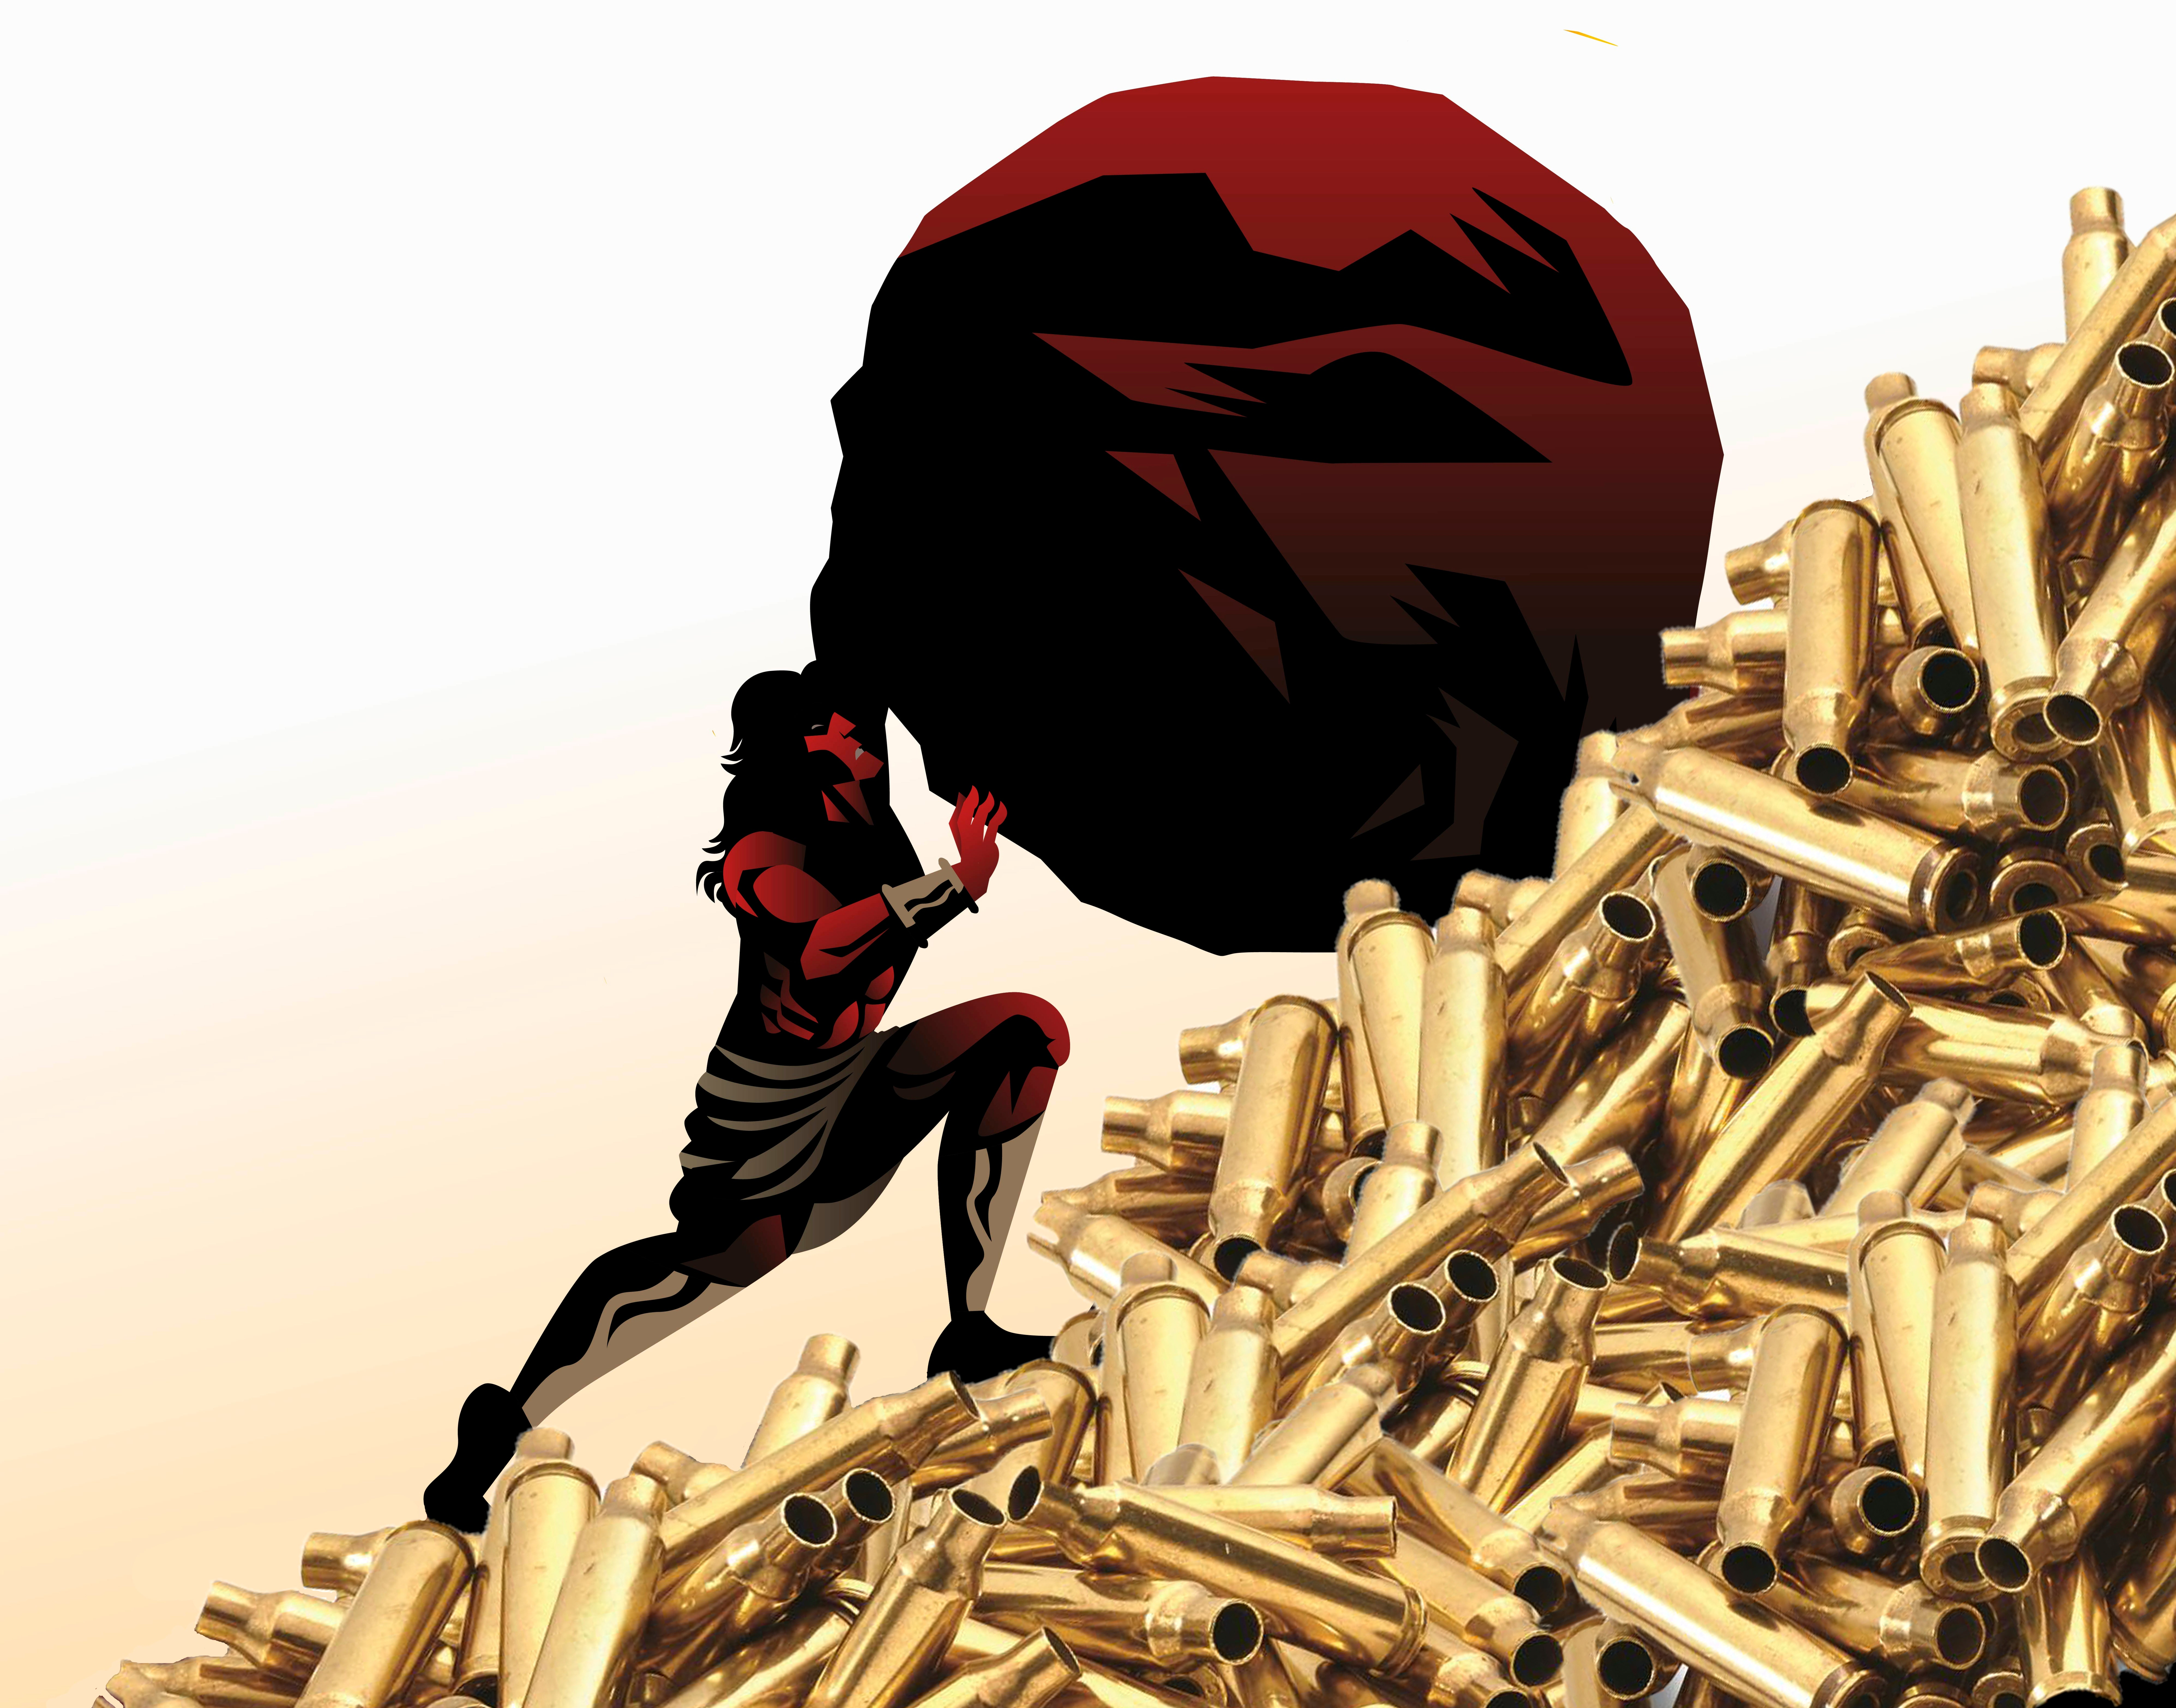 collage of sisyphus pushing a rock up ammo hill